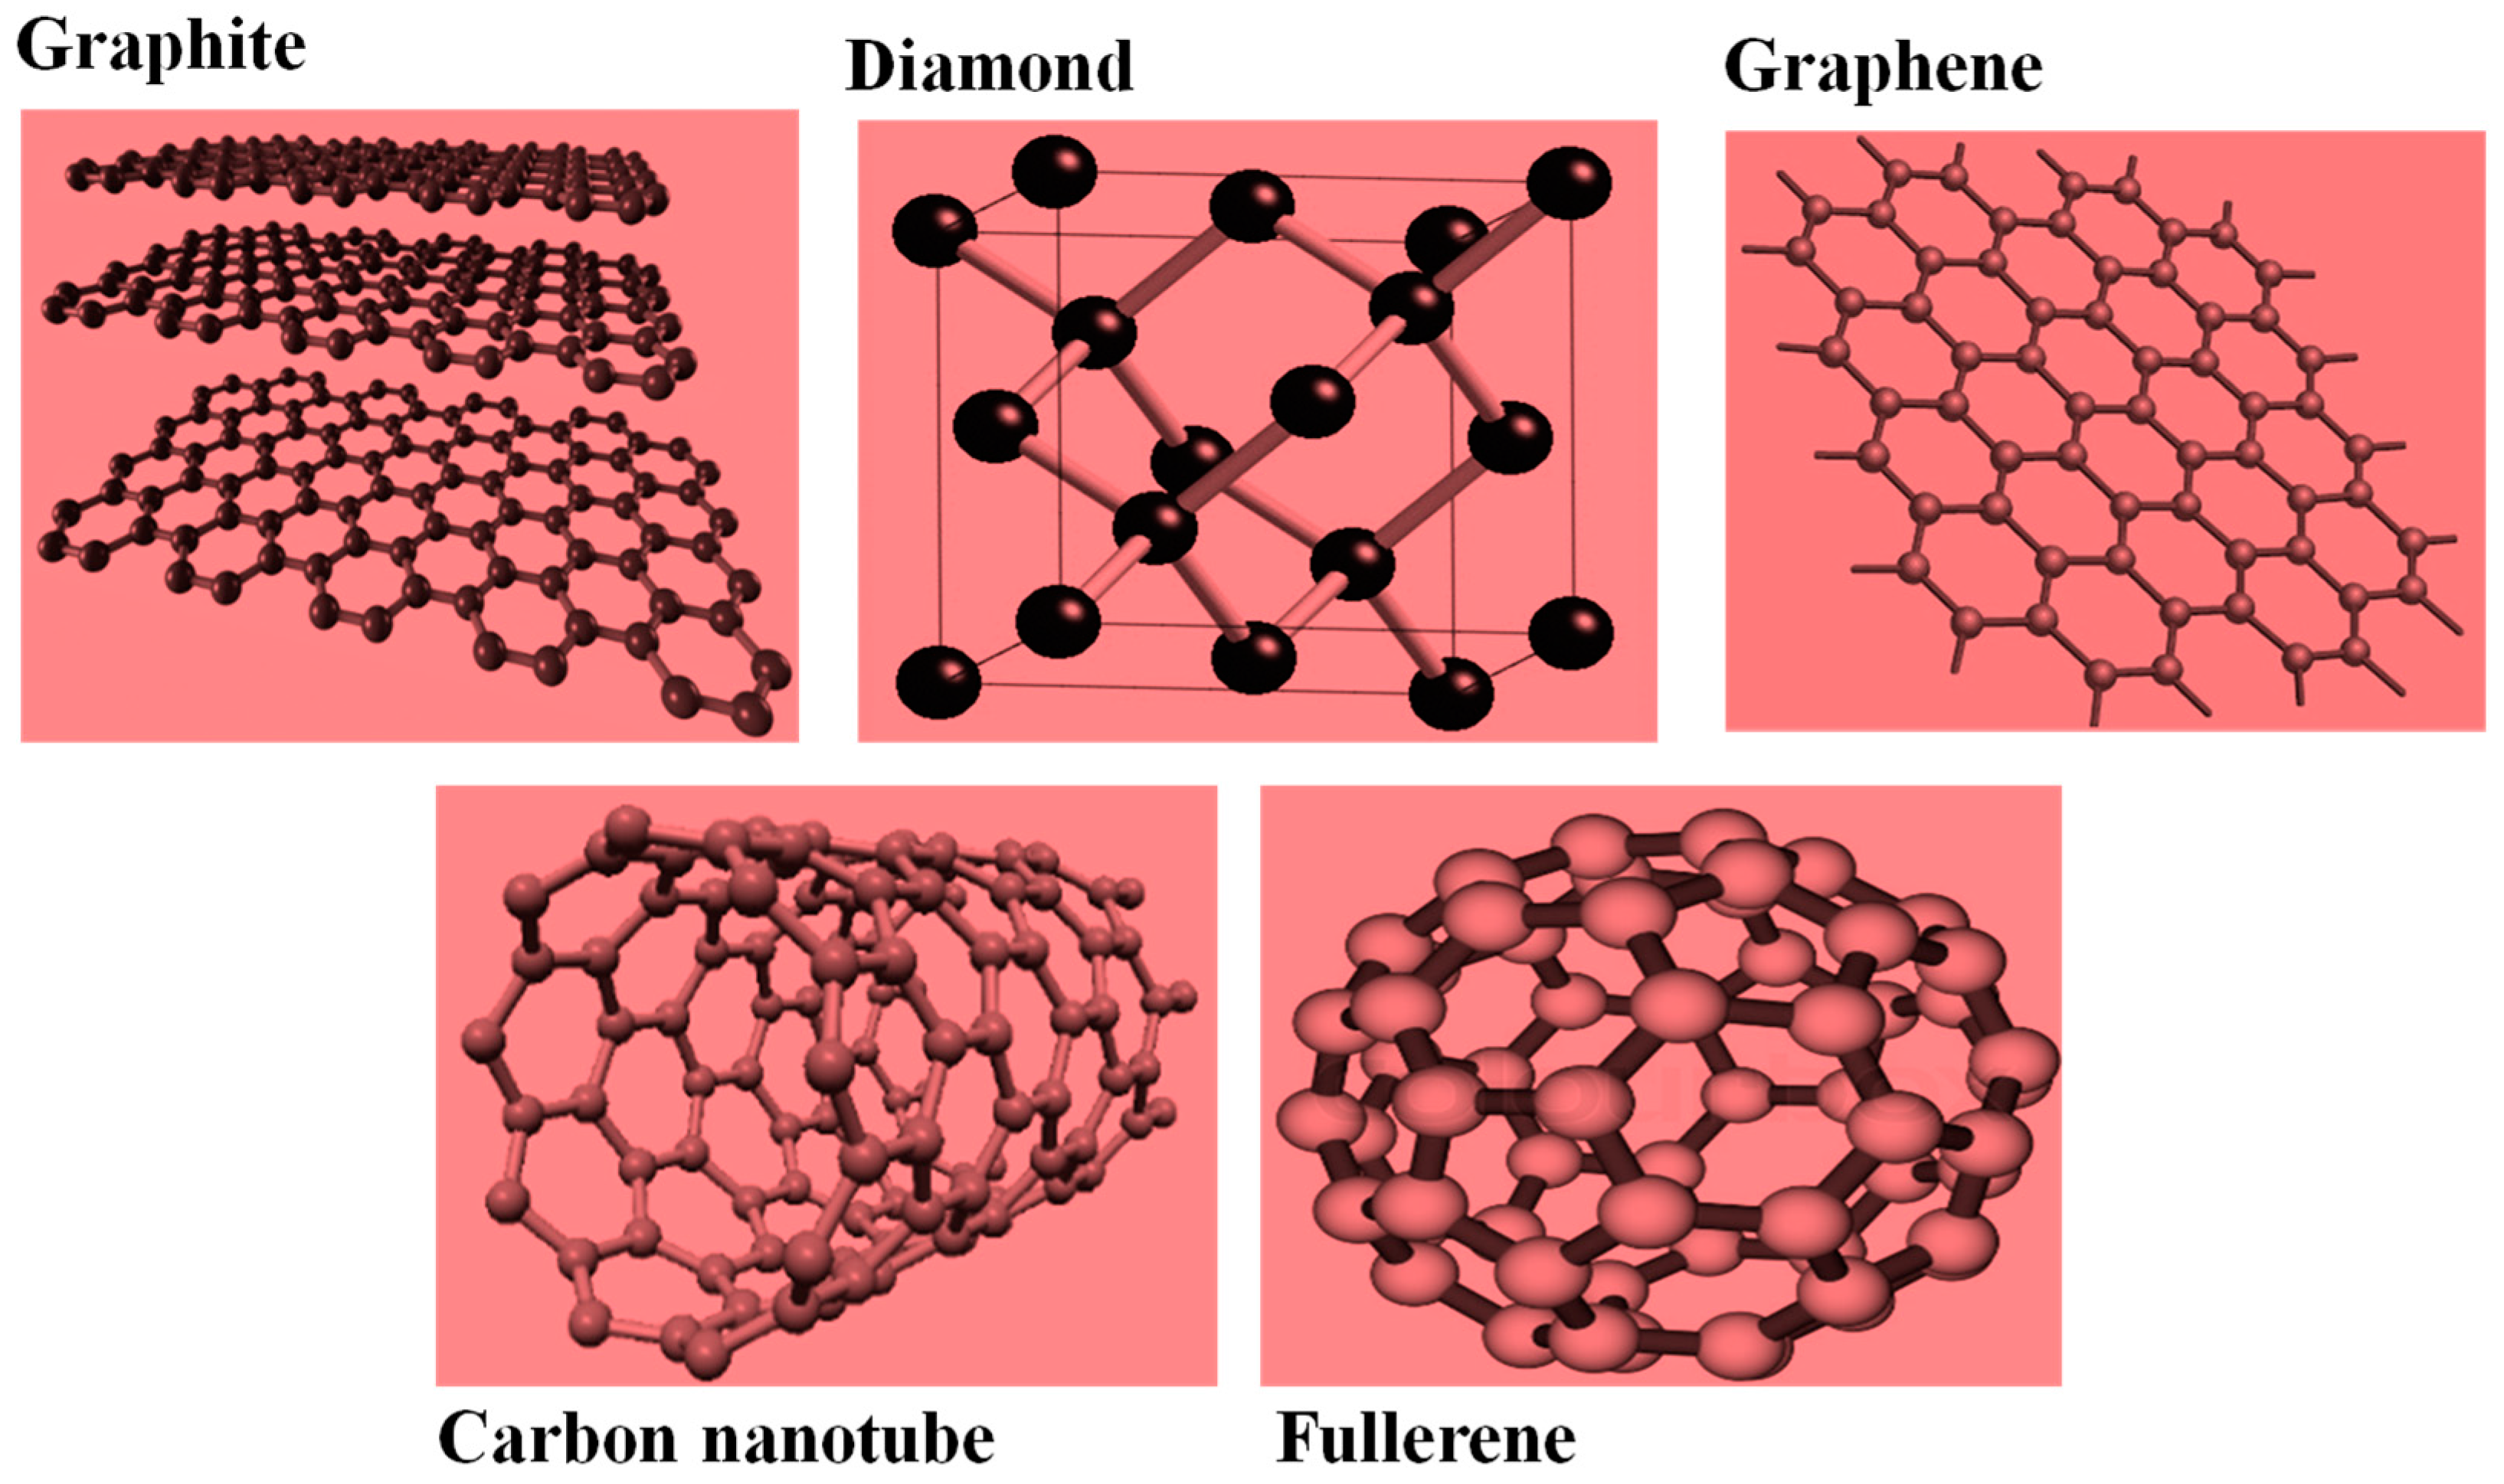 html free their text materials allotropes synthesis full applications and properties glimpse based a of nanomaterials diamond carbon some htm graphite